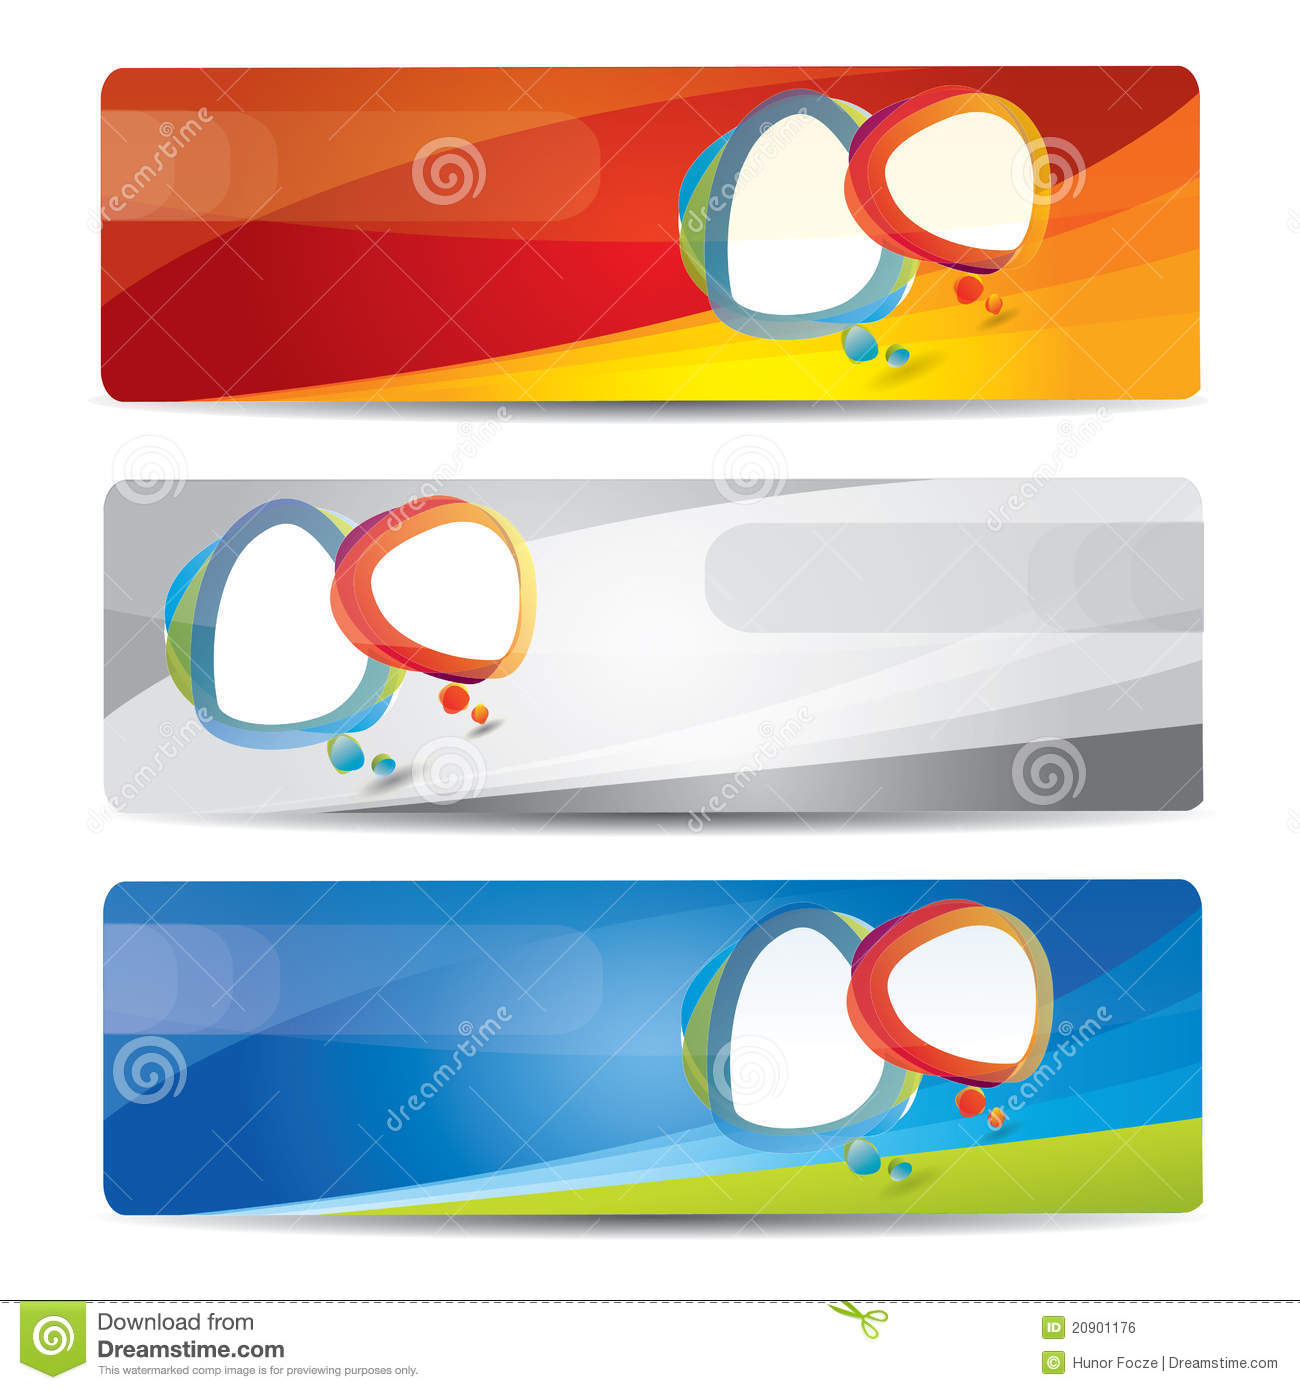 Design banner free download - Banner Set With Colorful Abstract Design Royalty Free Stock Image